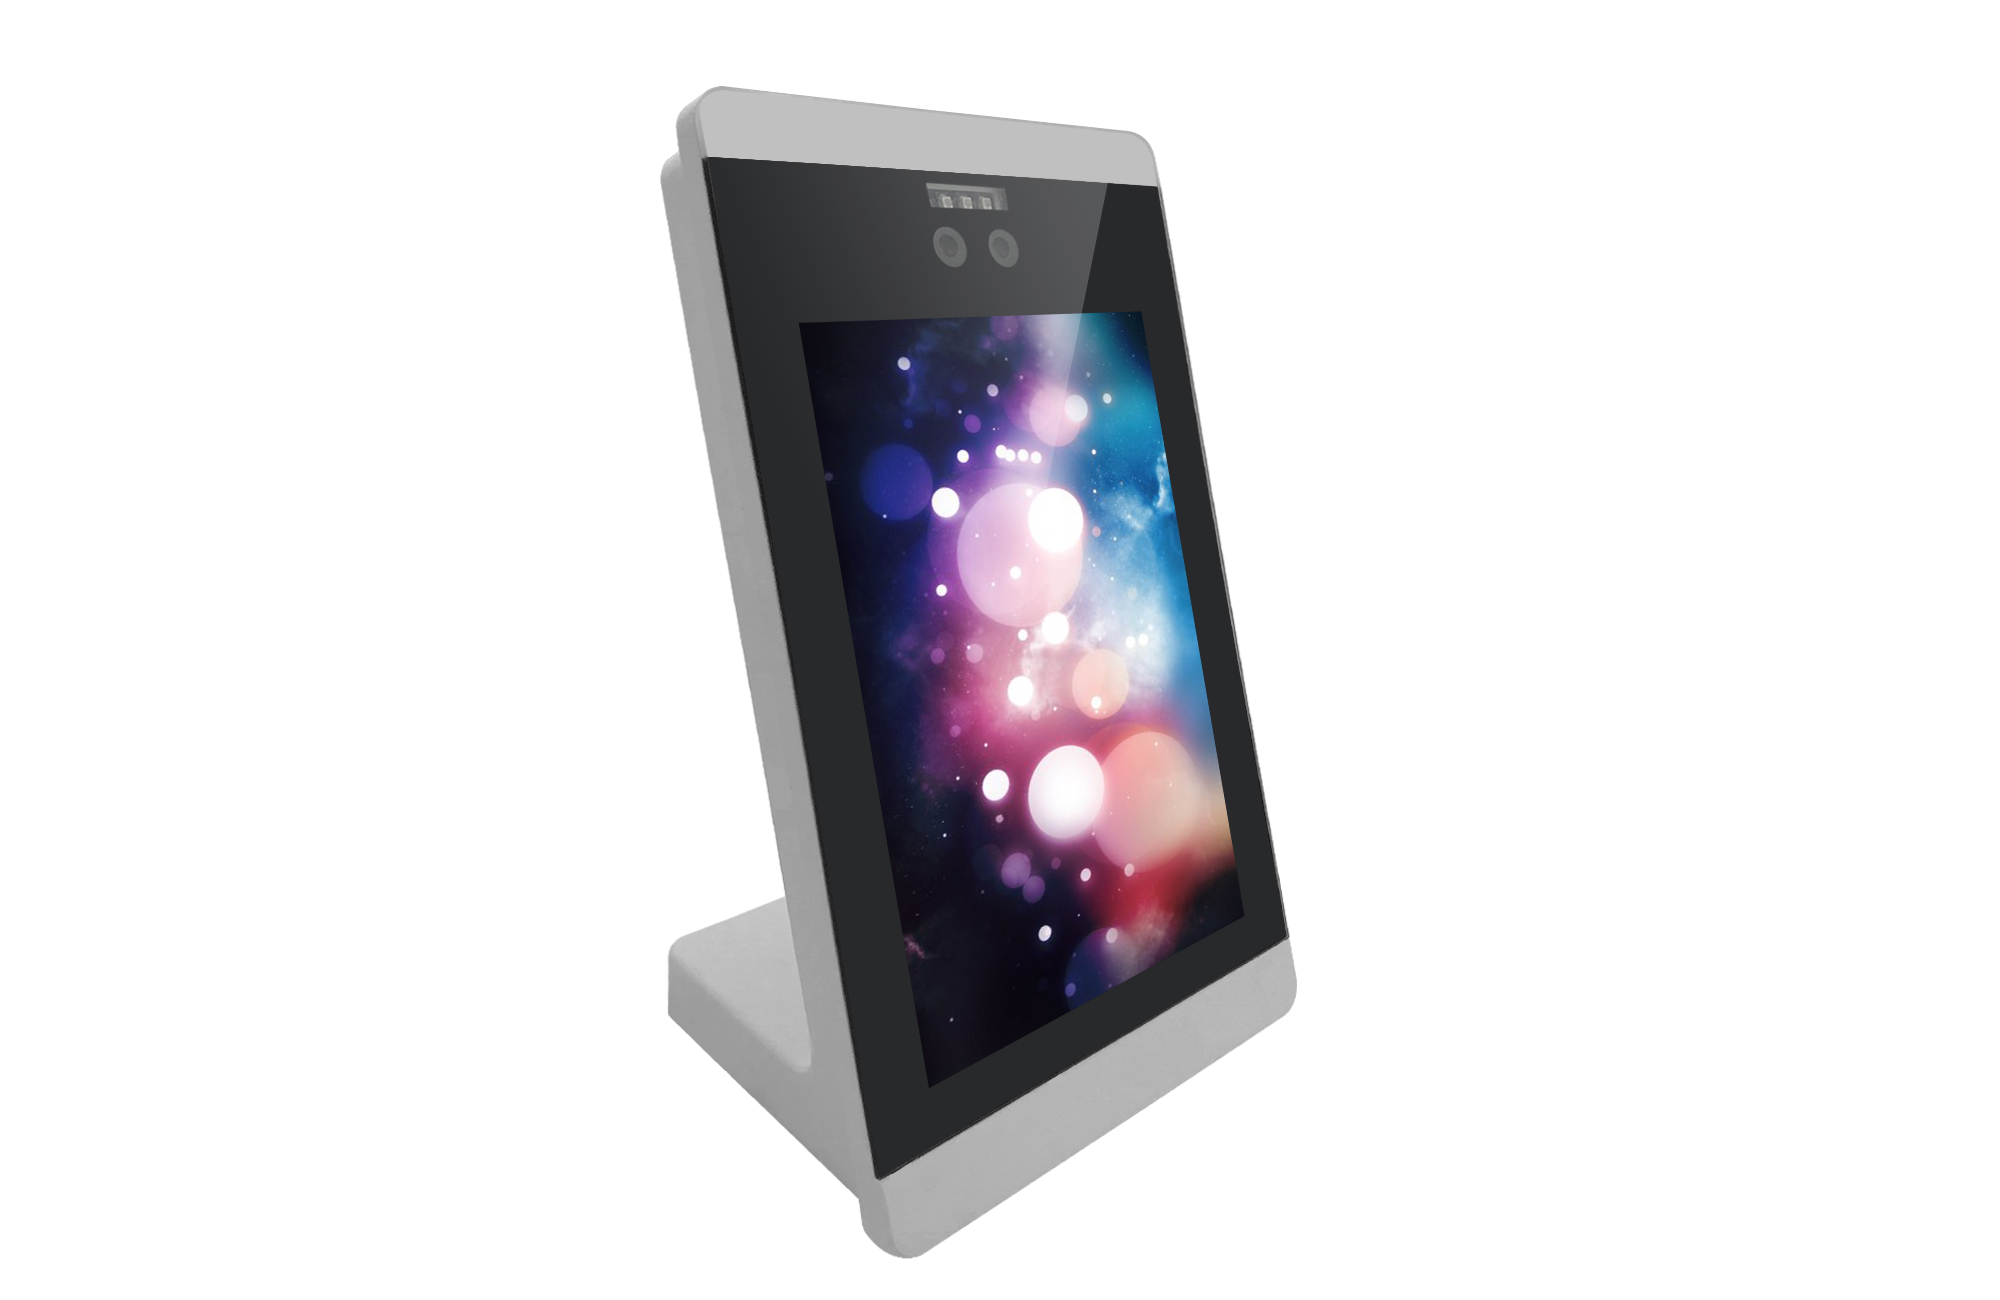 8 Inch Android All-in-one Panel PC